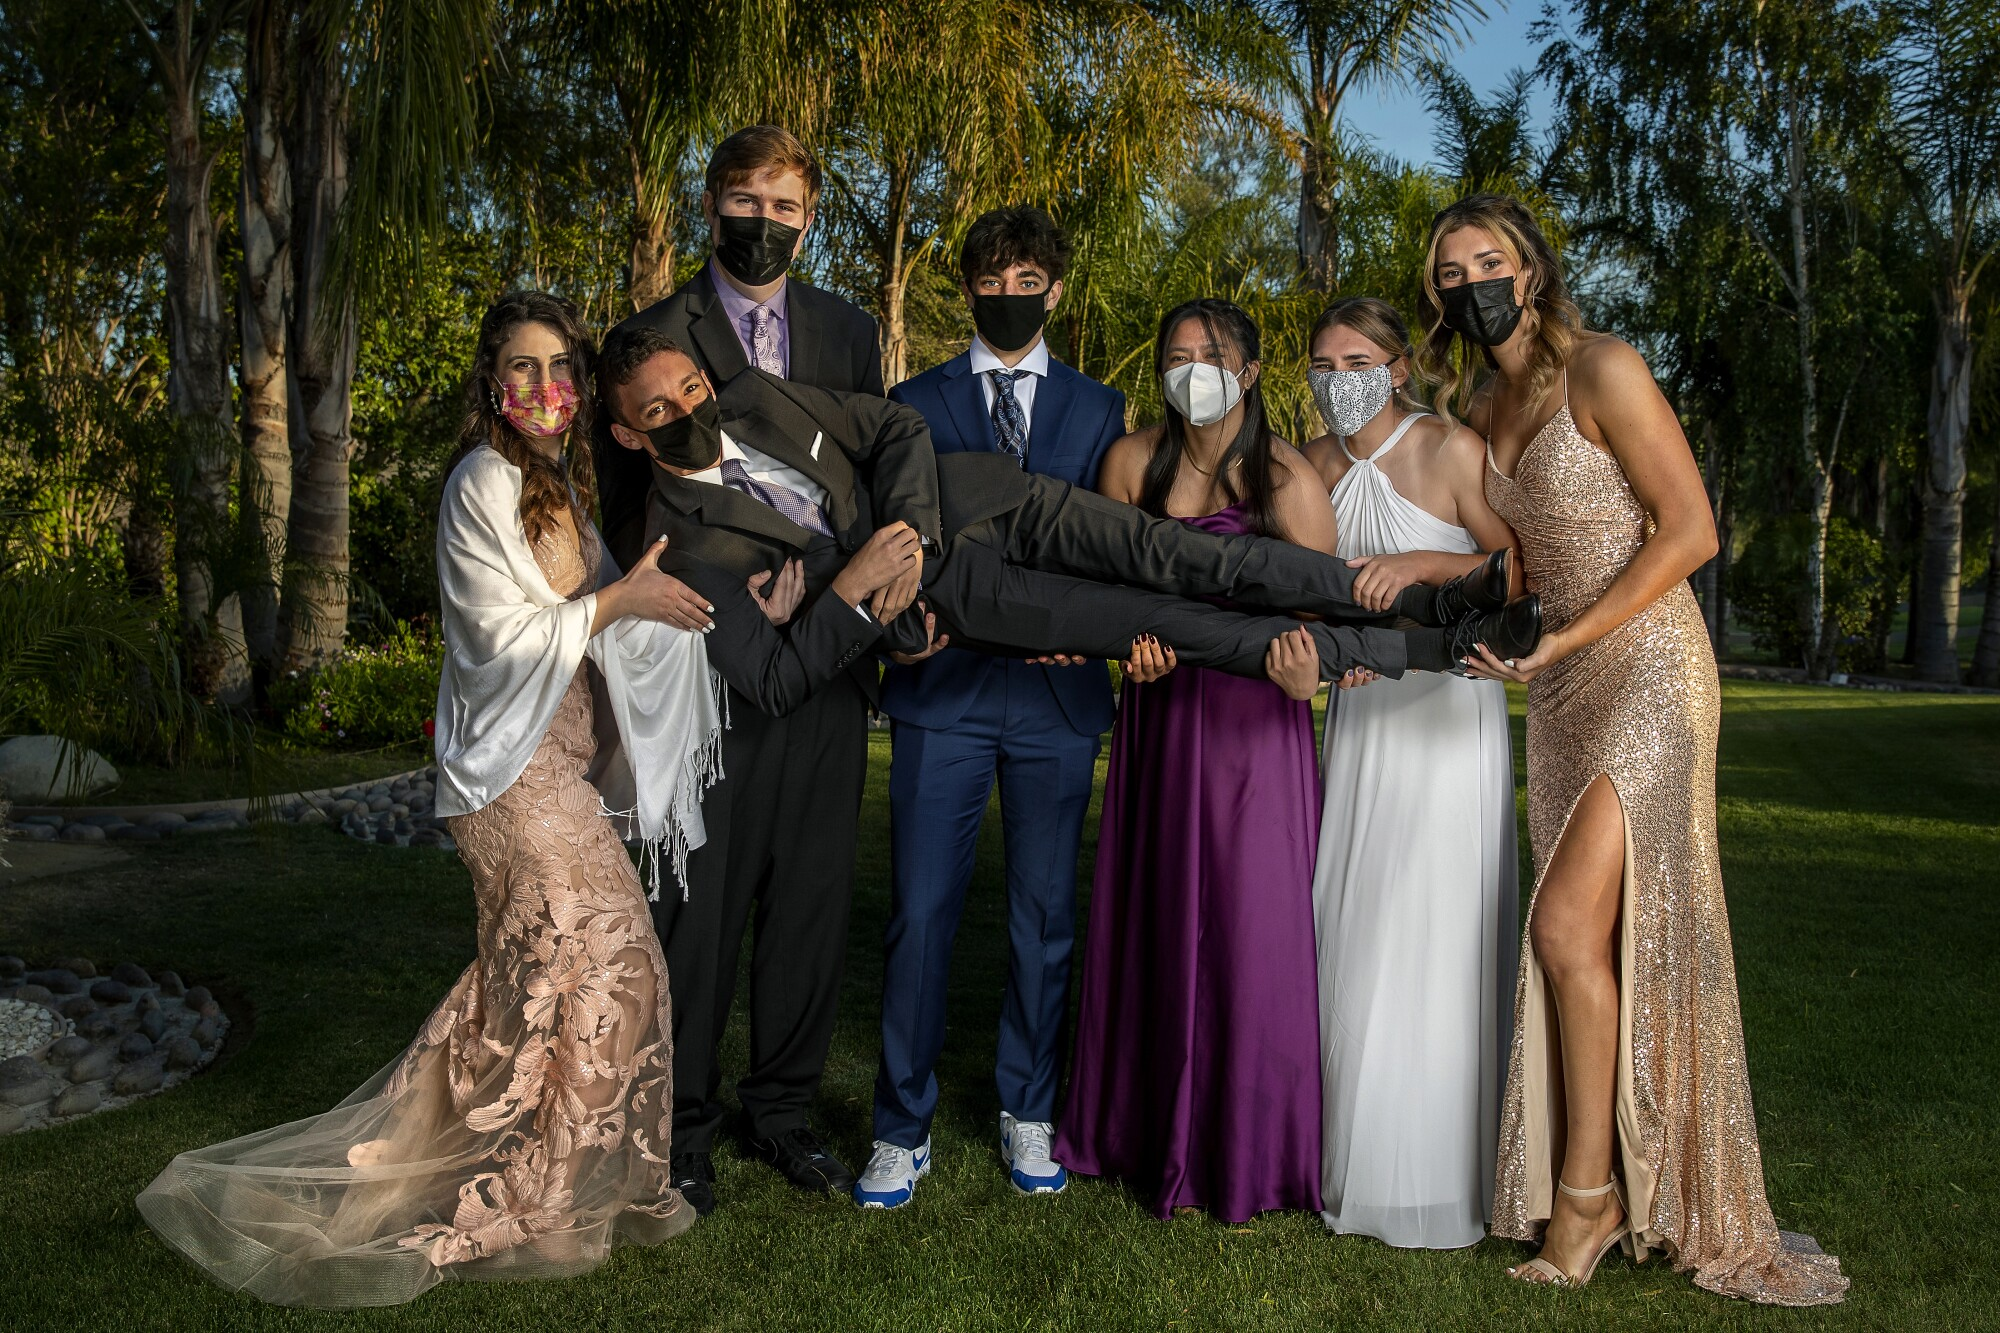 Students in formal wear and masks hoist a classmate off the ground.